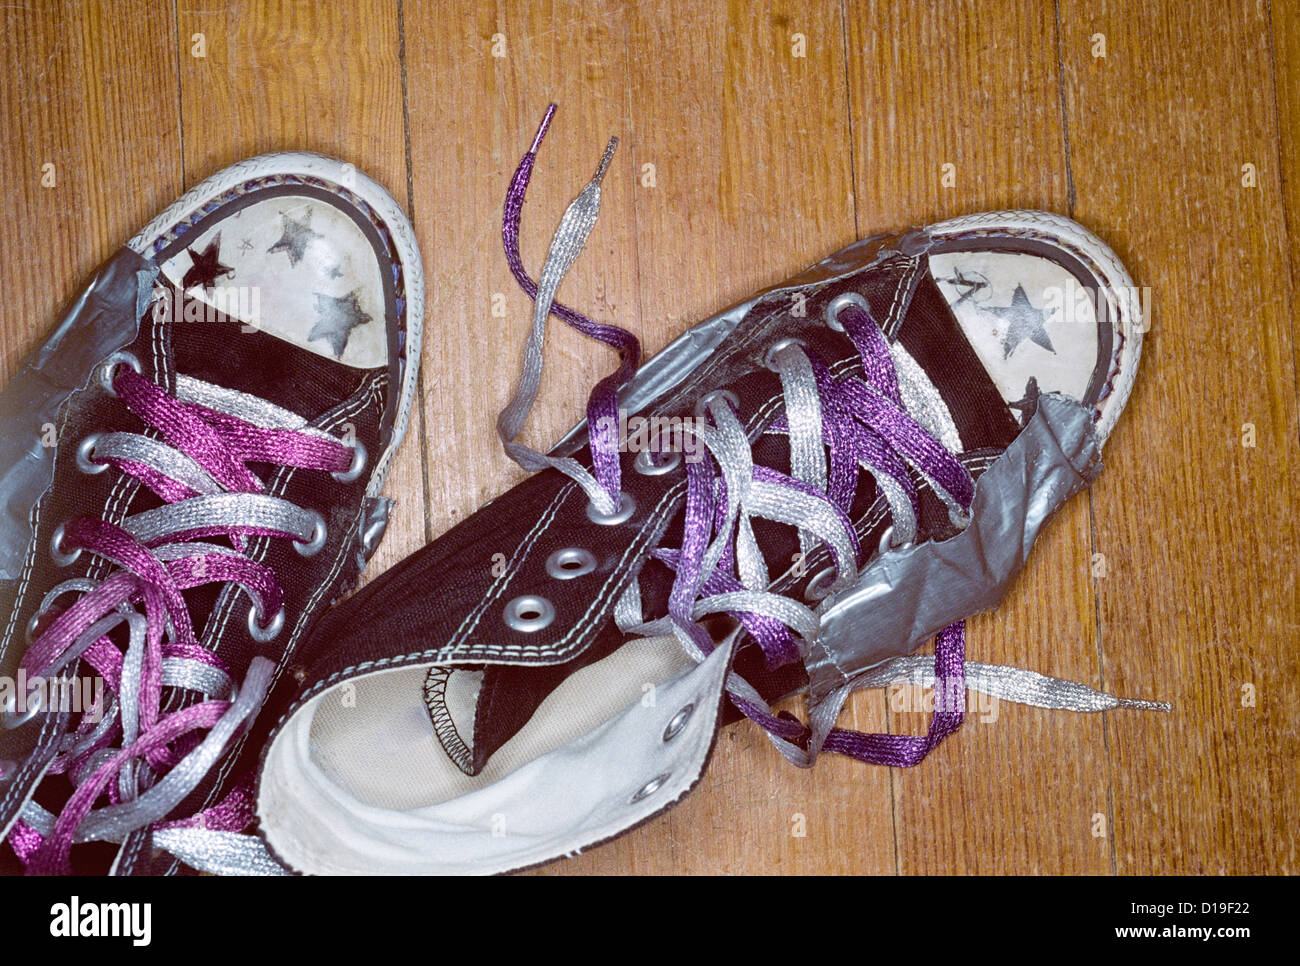 Girl's shoes with metallic laces - Stock Image